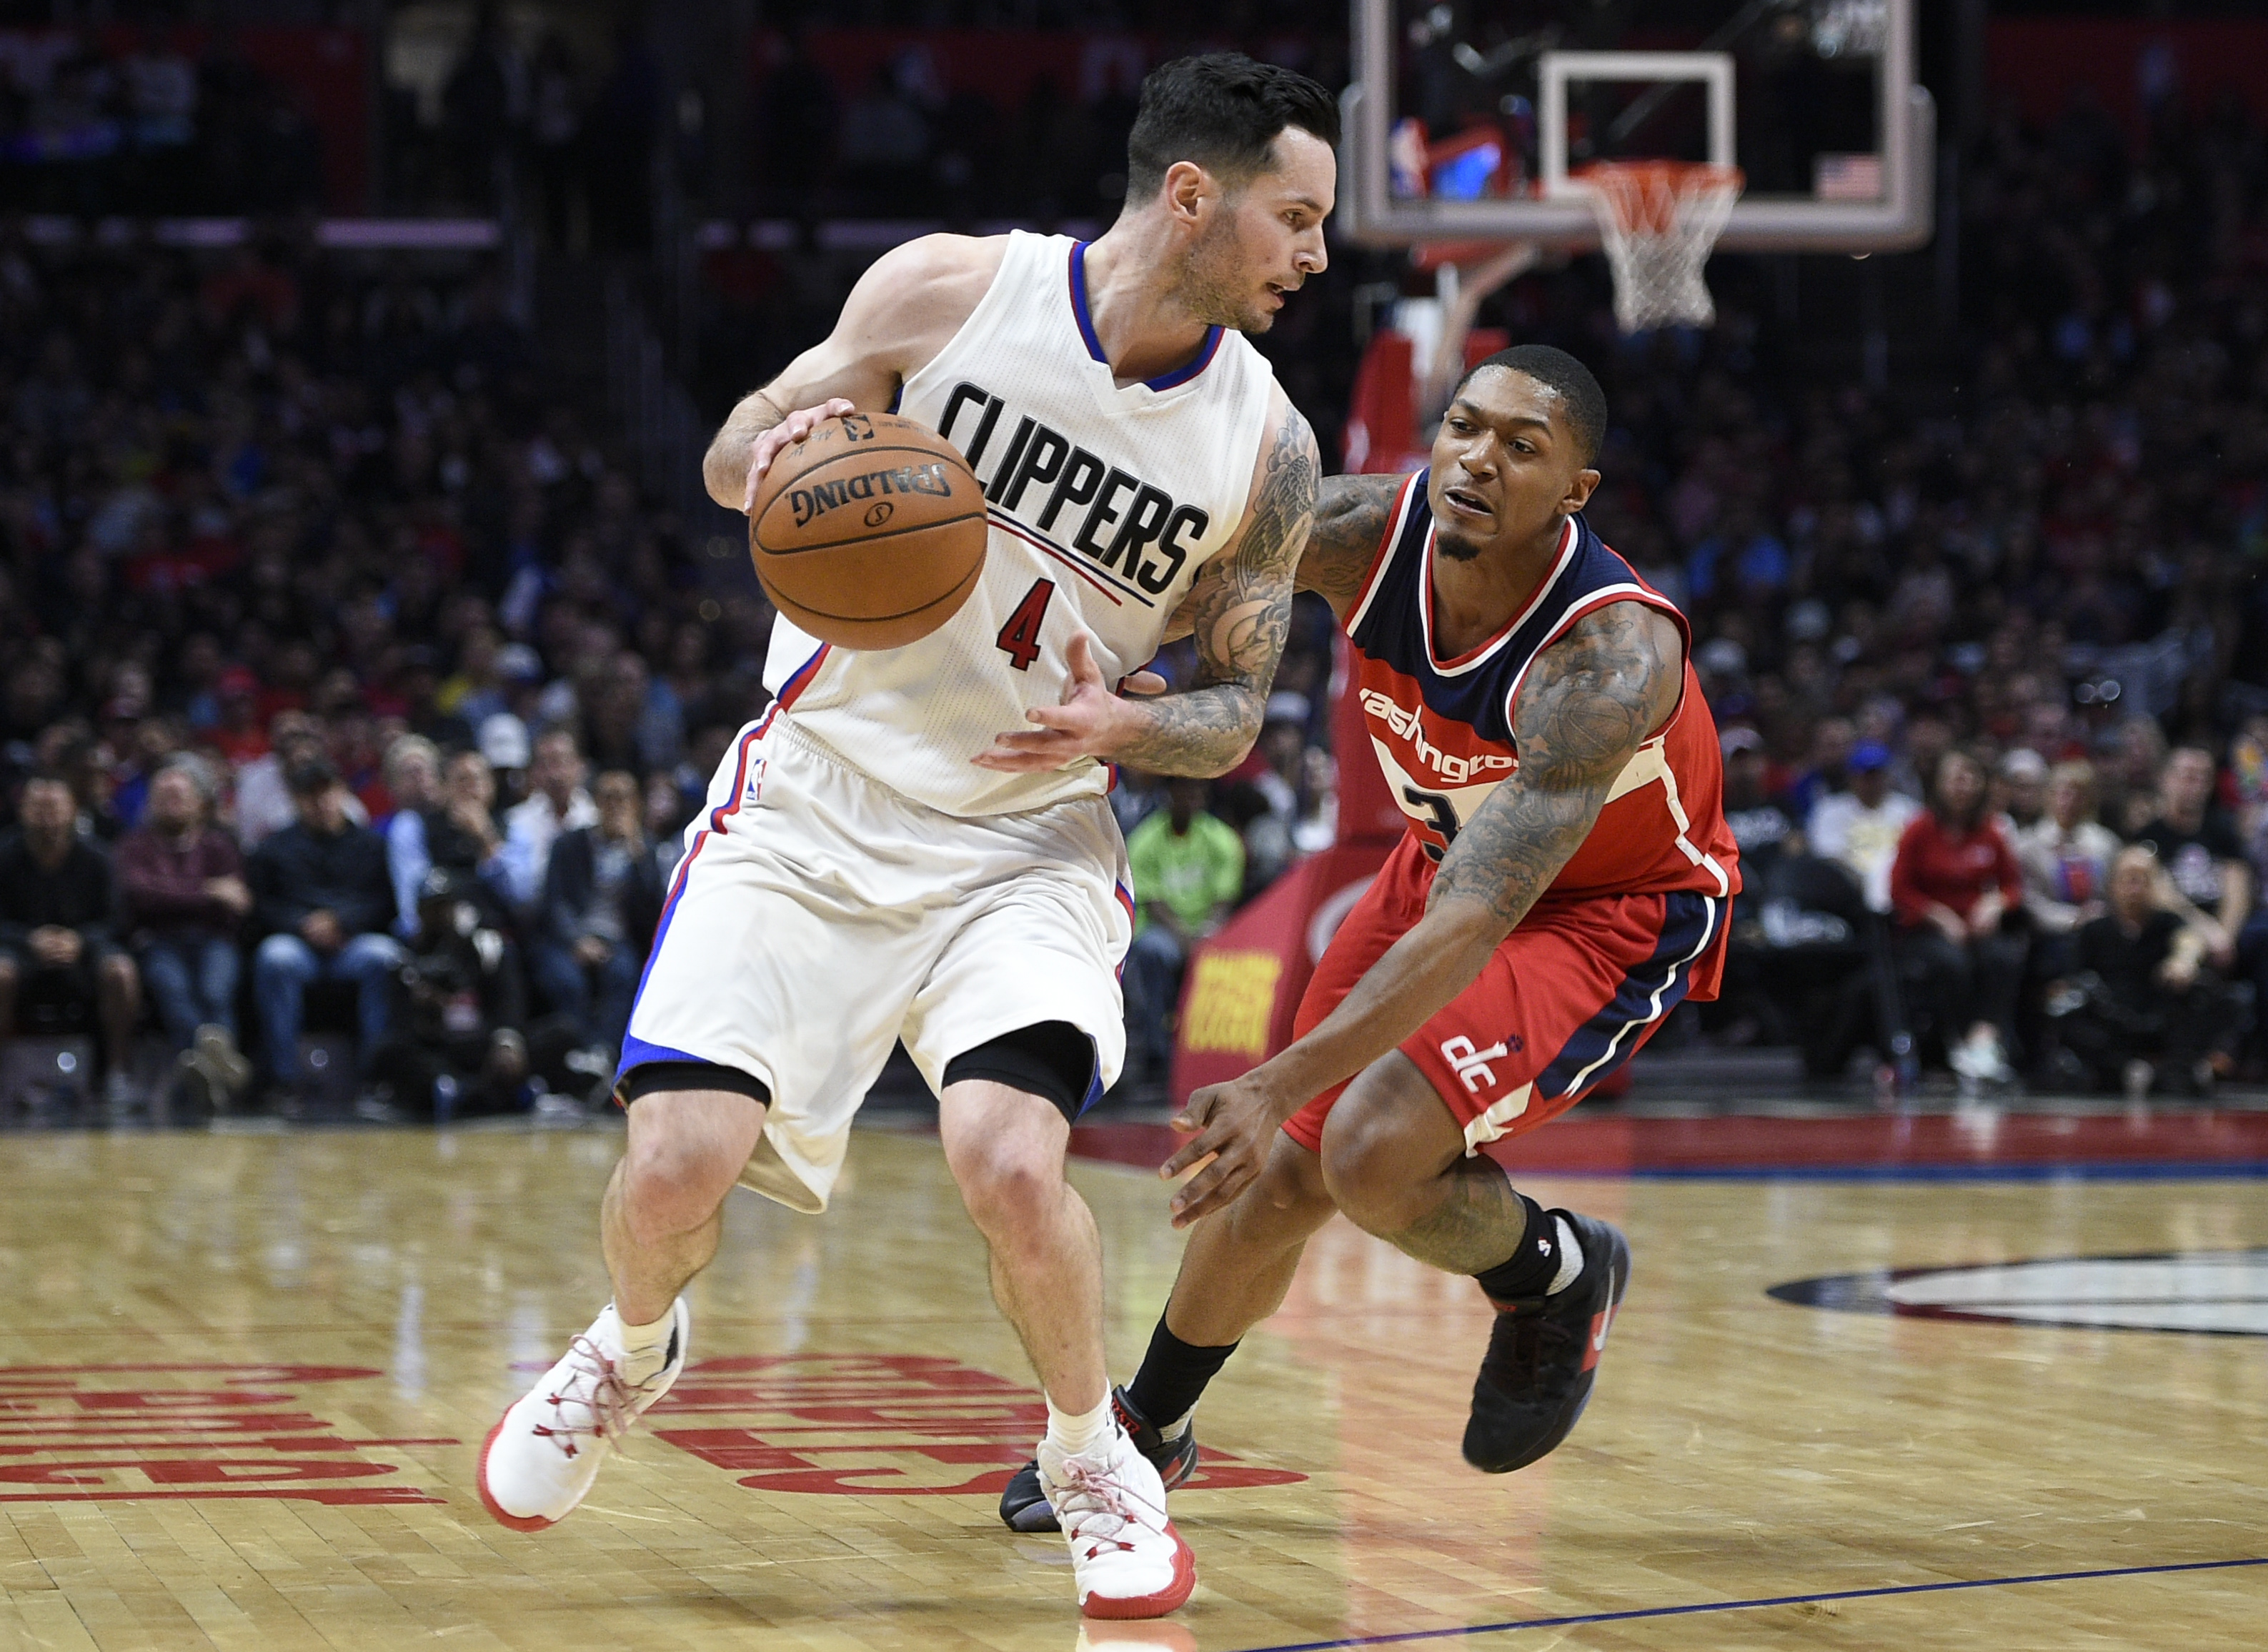 9980320-nba-washington-wizards-at-los-angeles-clippers